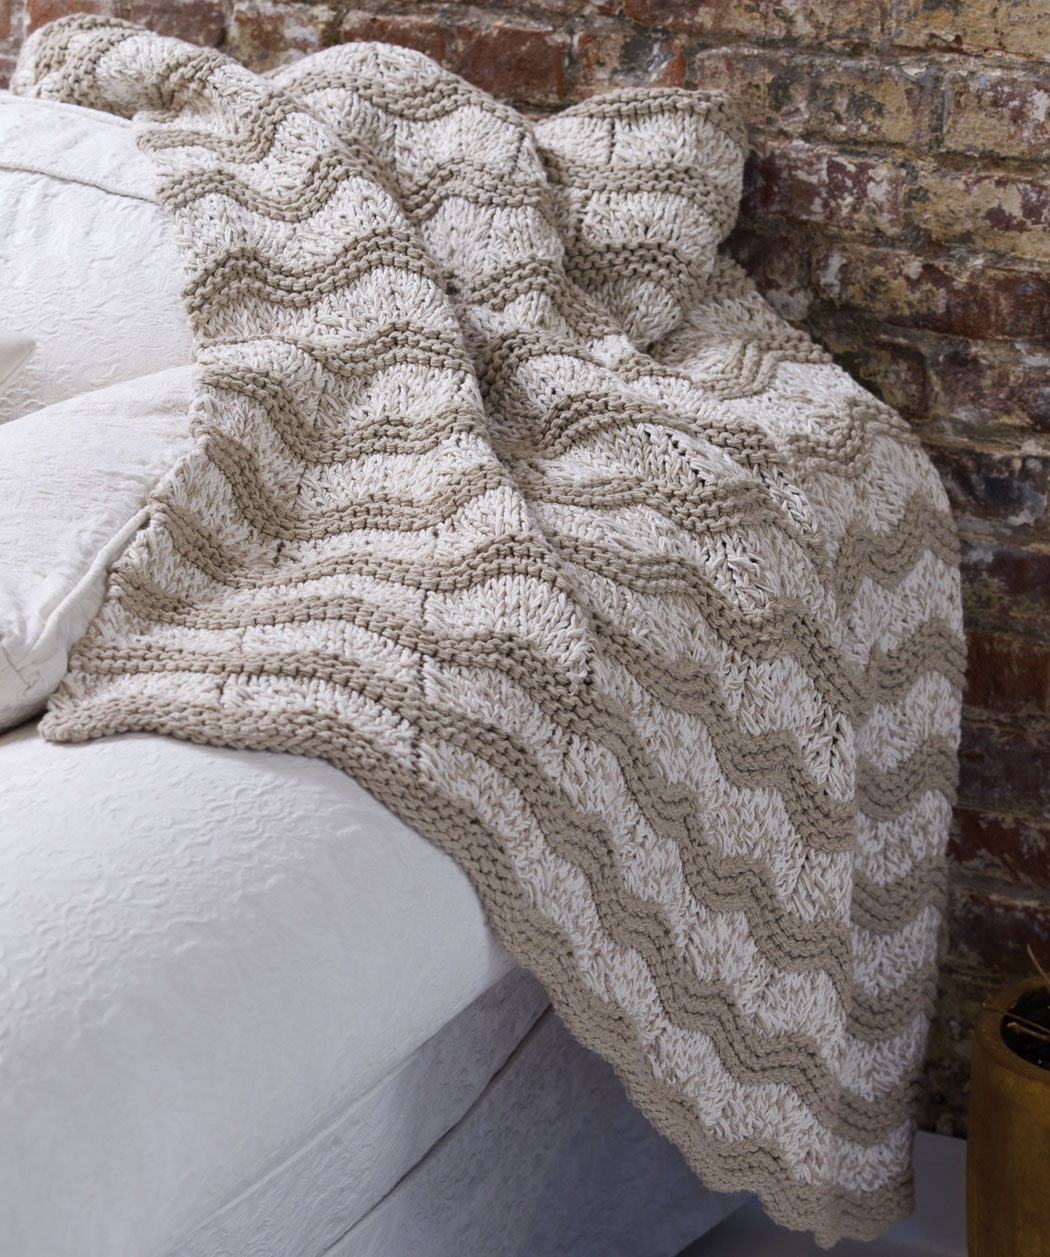 Knitting Patterns For Throws : Knitted Afghan Patterns A Knitting Blog